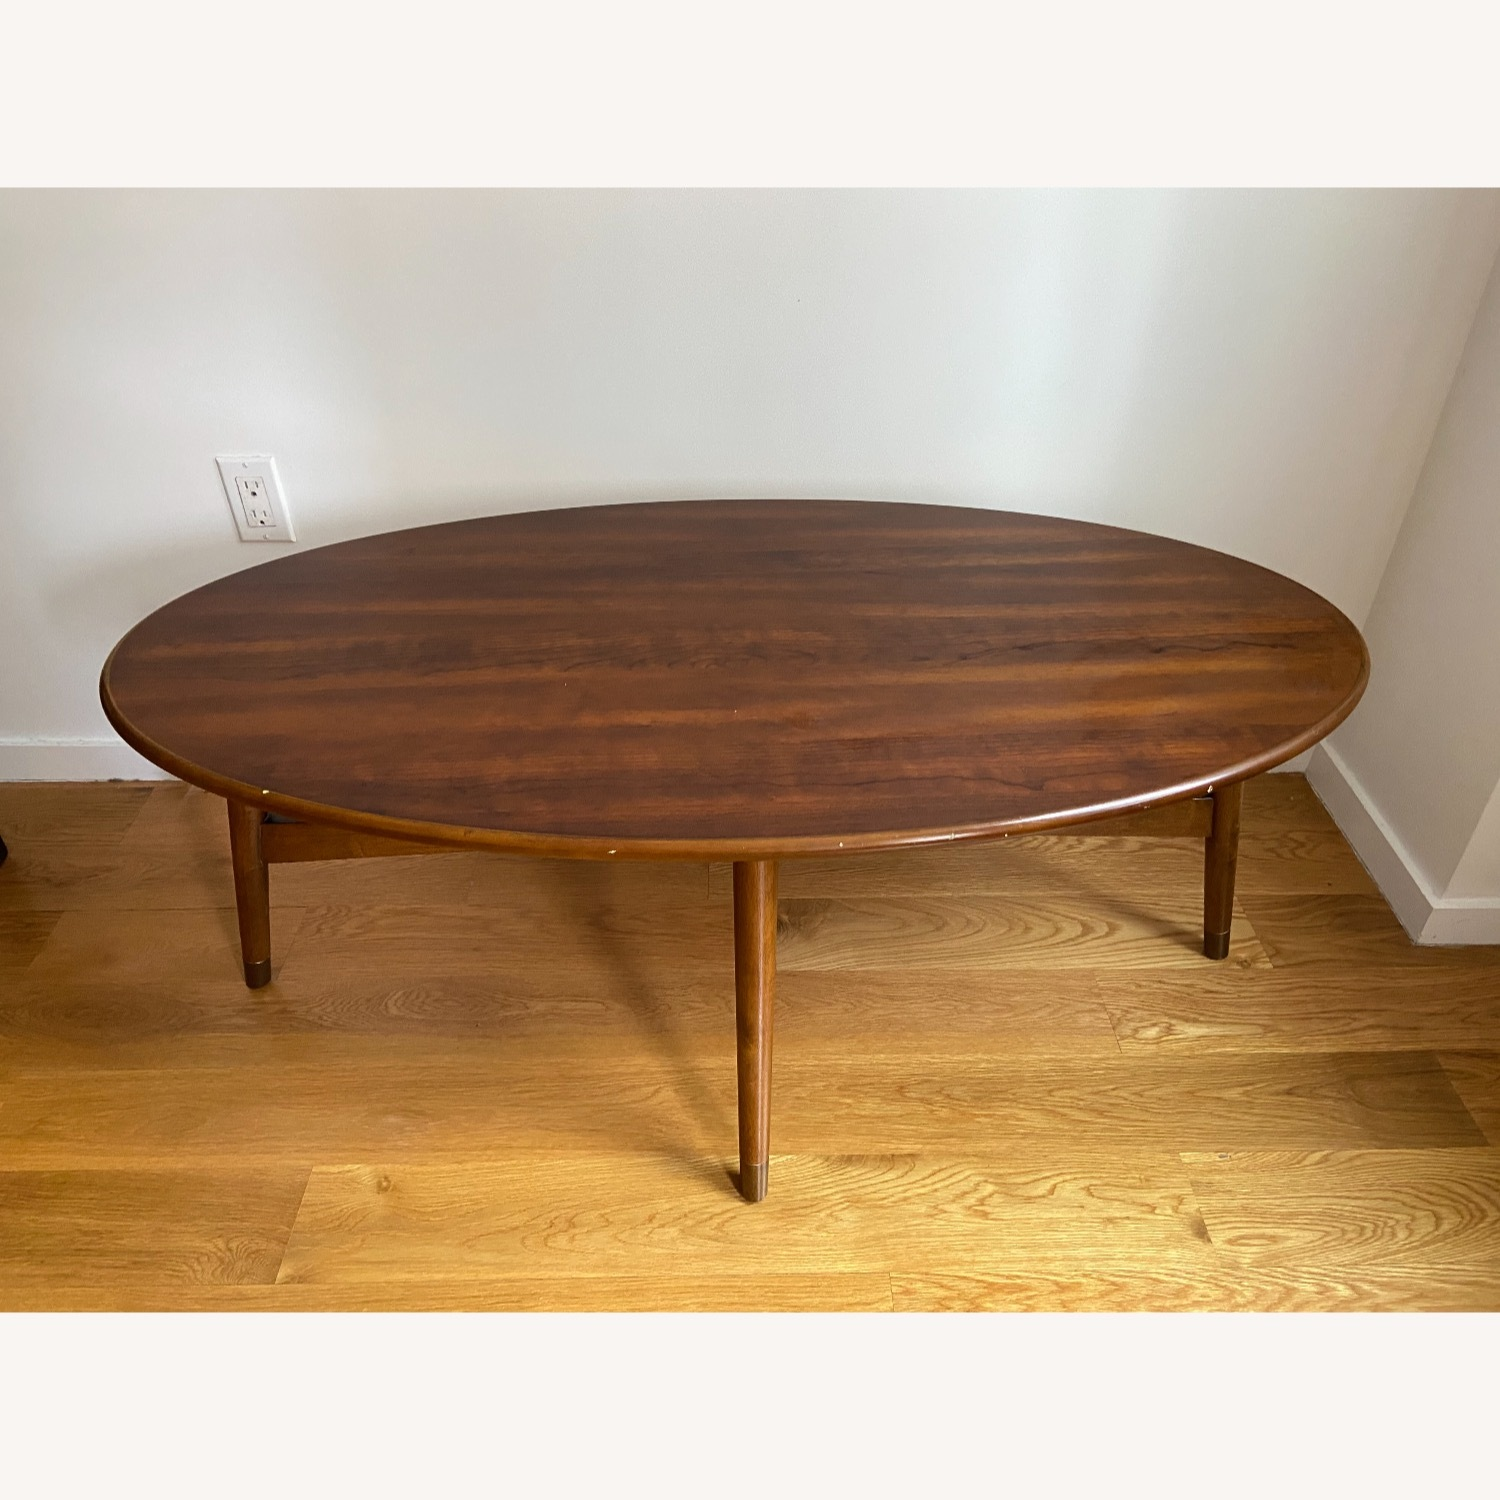 Pier 1 Coffee Table - image-1